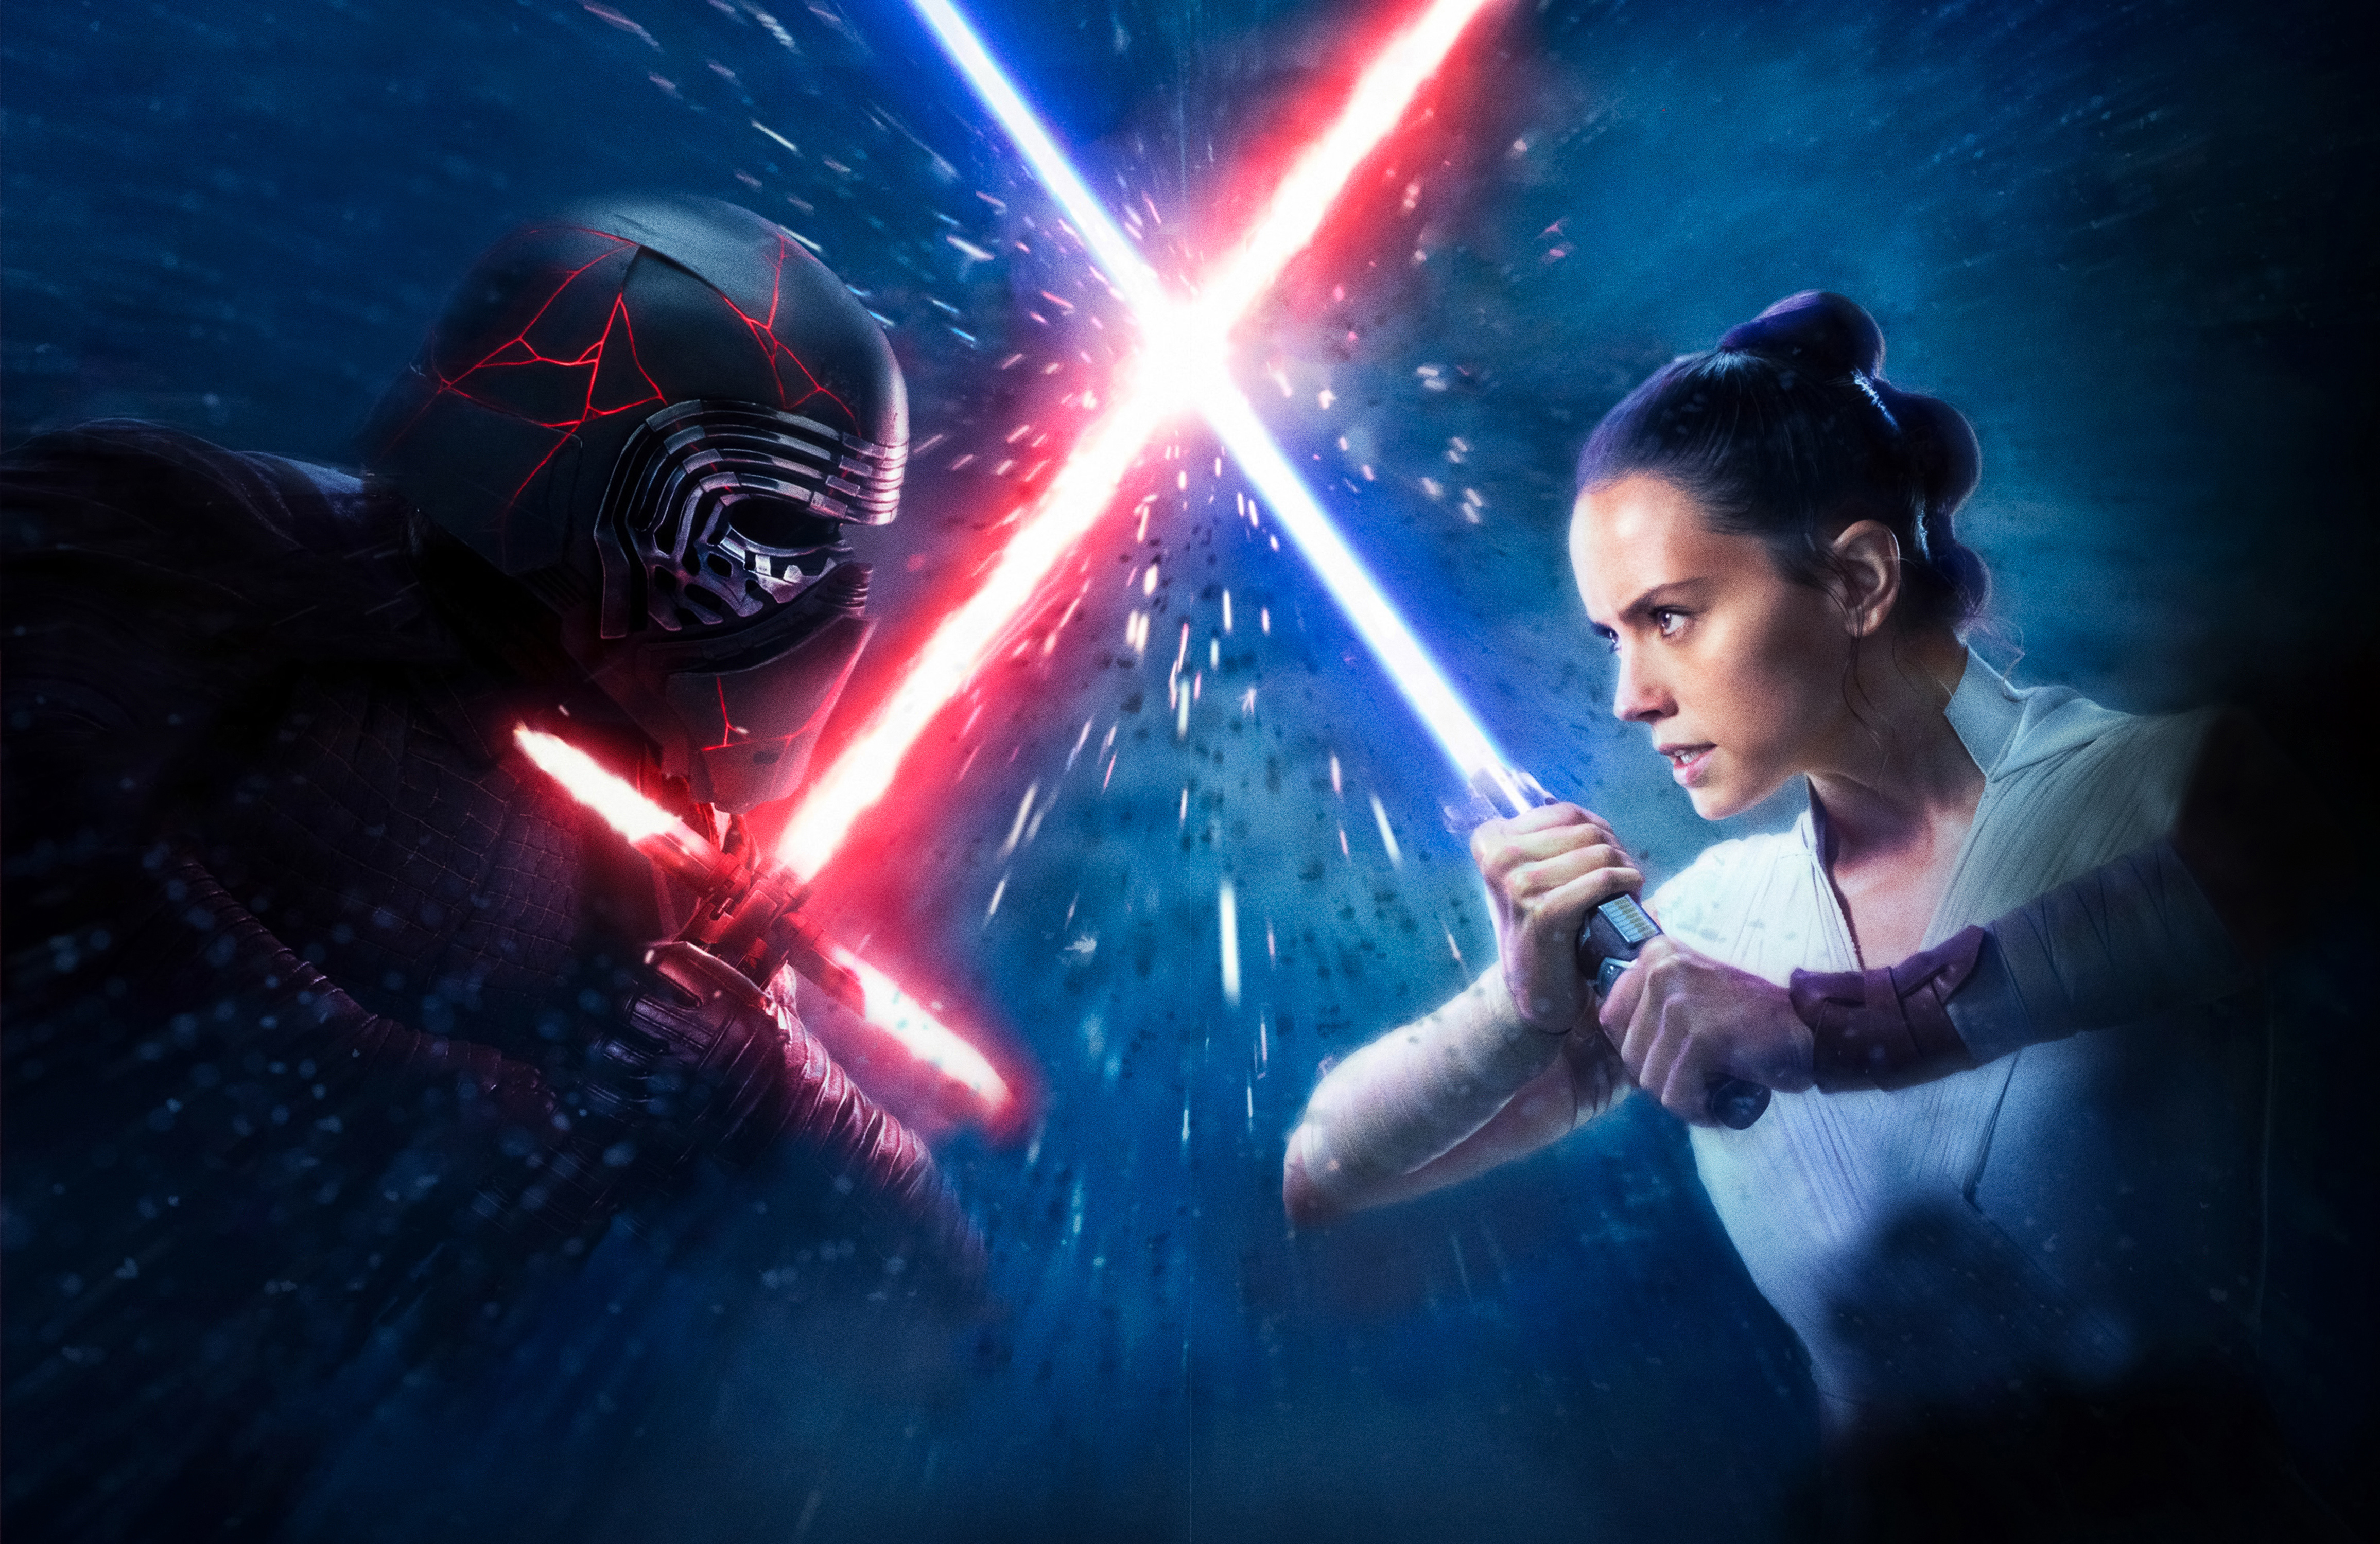 Star Wars The Rise Of Skywalker 4k 5k Hd Movies 4k Wallpapers Images Backgrounds Photos And Pictures